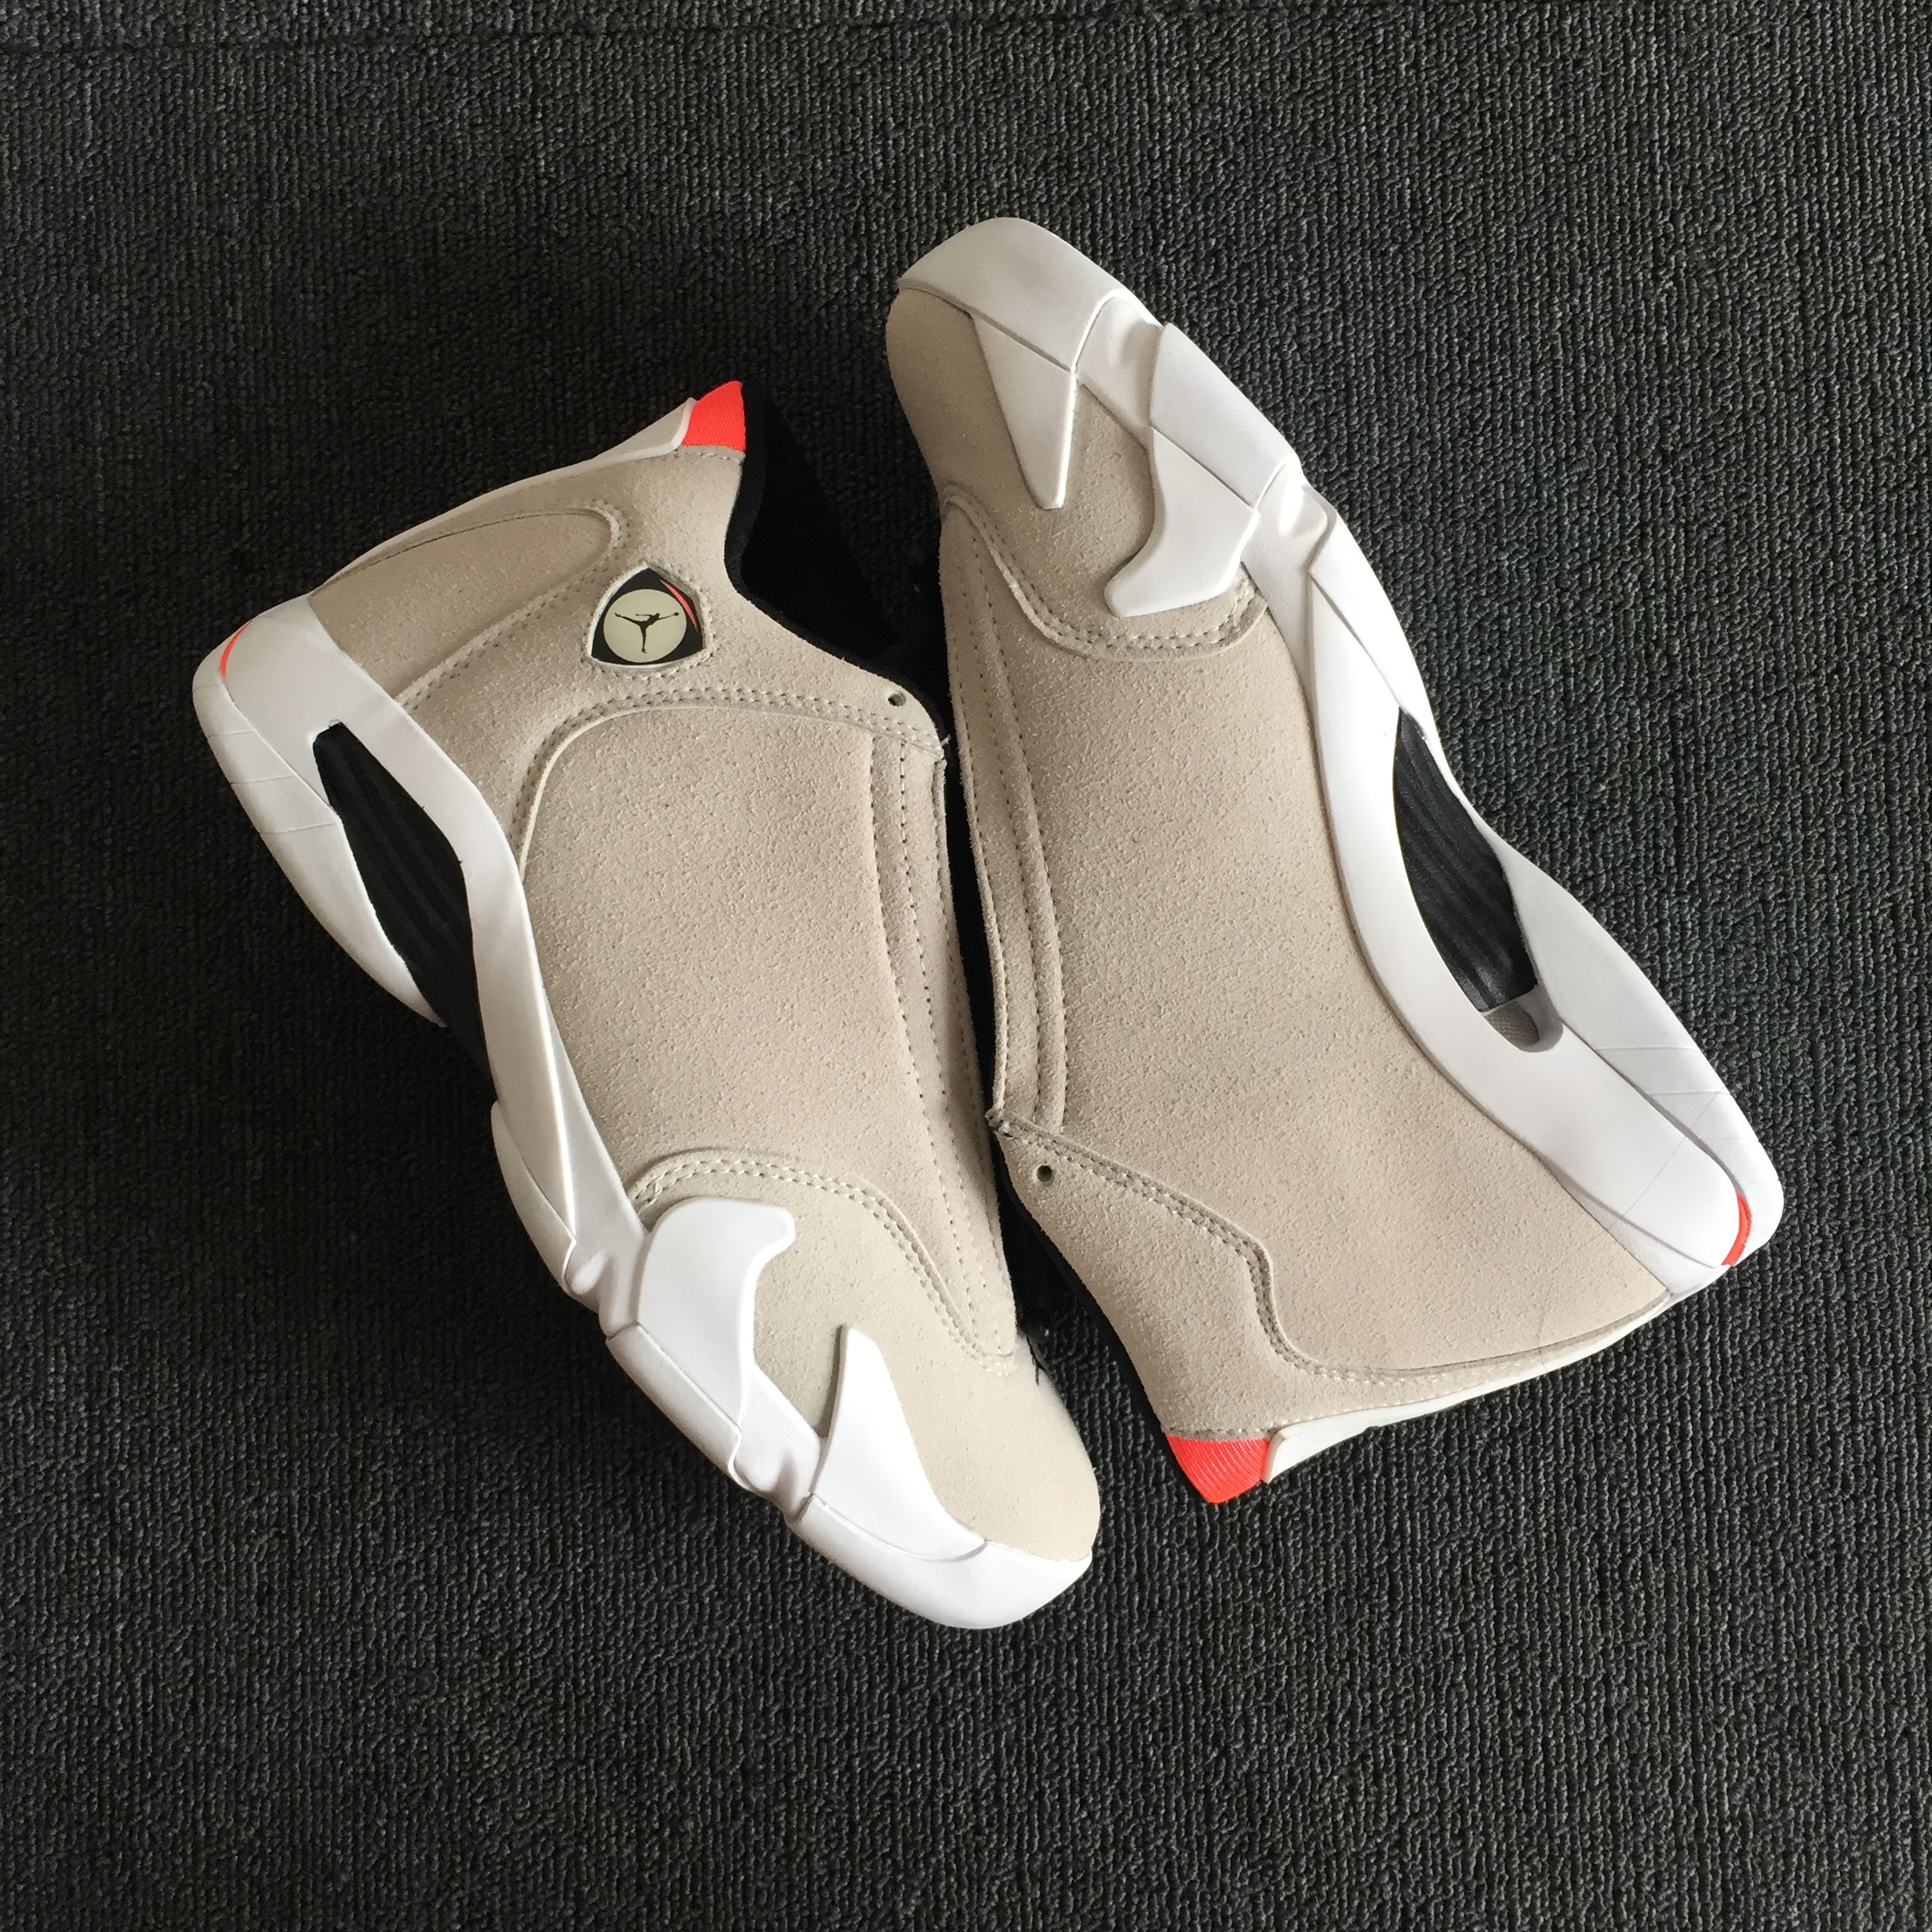 Men Jordan 14 Desert Sand Official Photos Beign Black Shoes